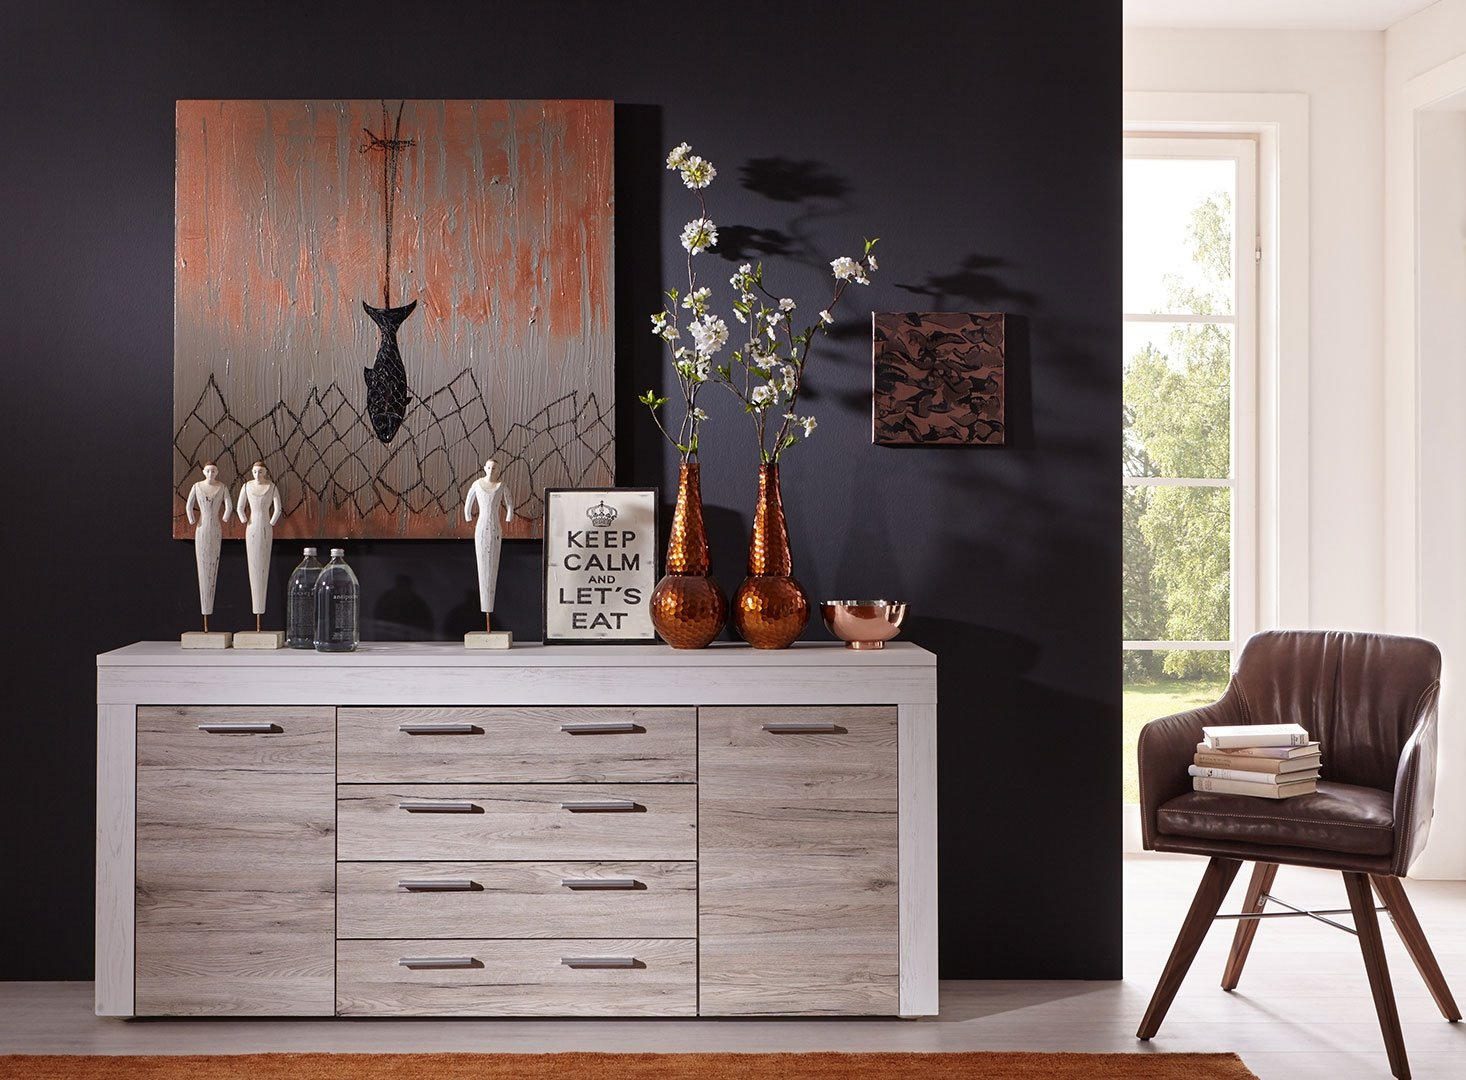 sideboard boom eiche sand pinie wei kommode schrank wohnzimmer holz highboard ebay. Black Bedroom Furniture Sets. Home Design Ideas